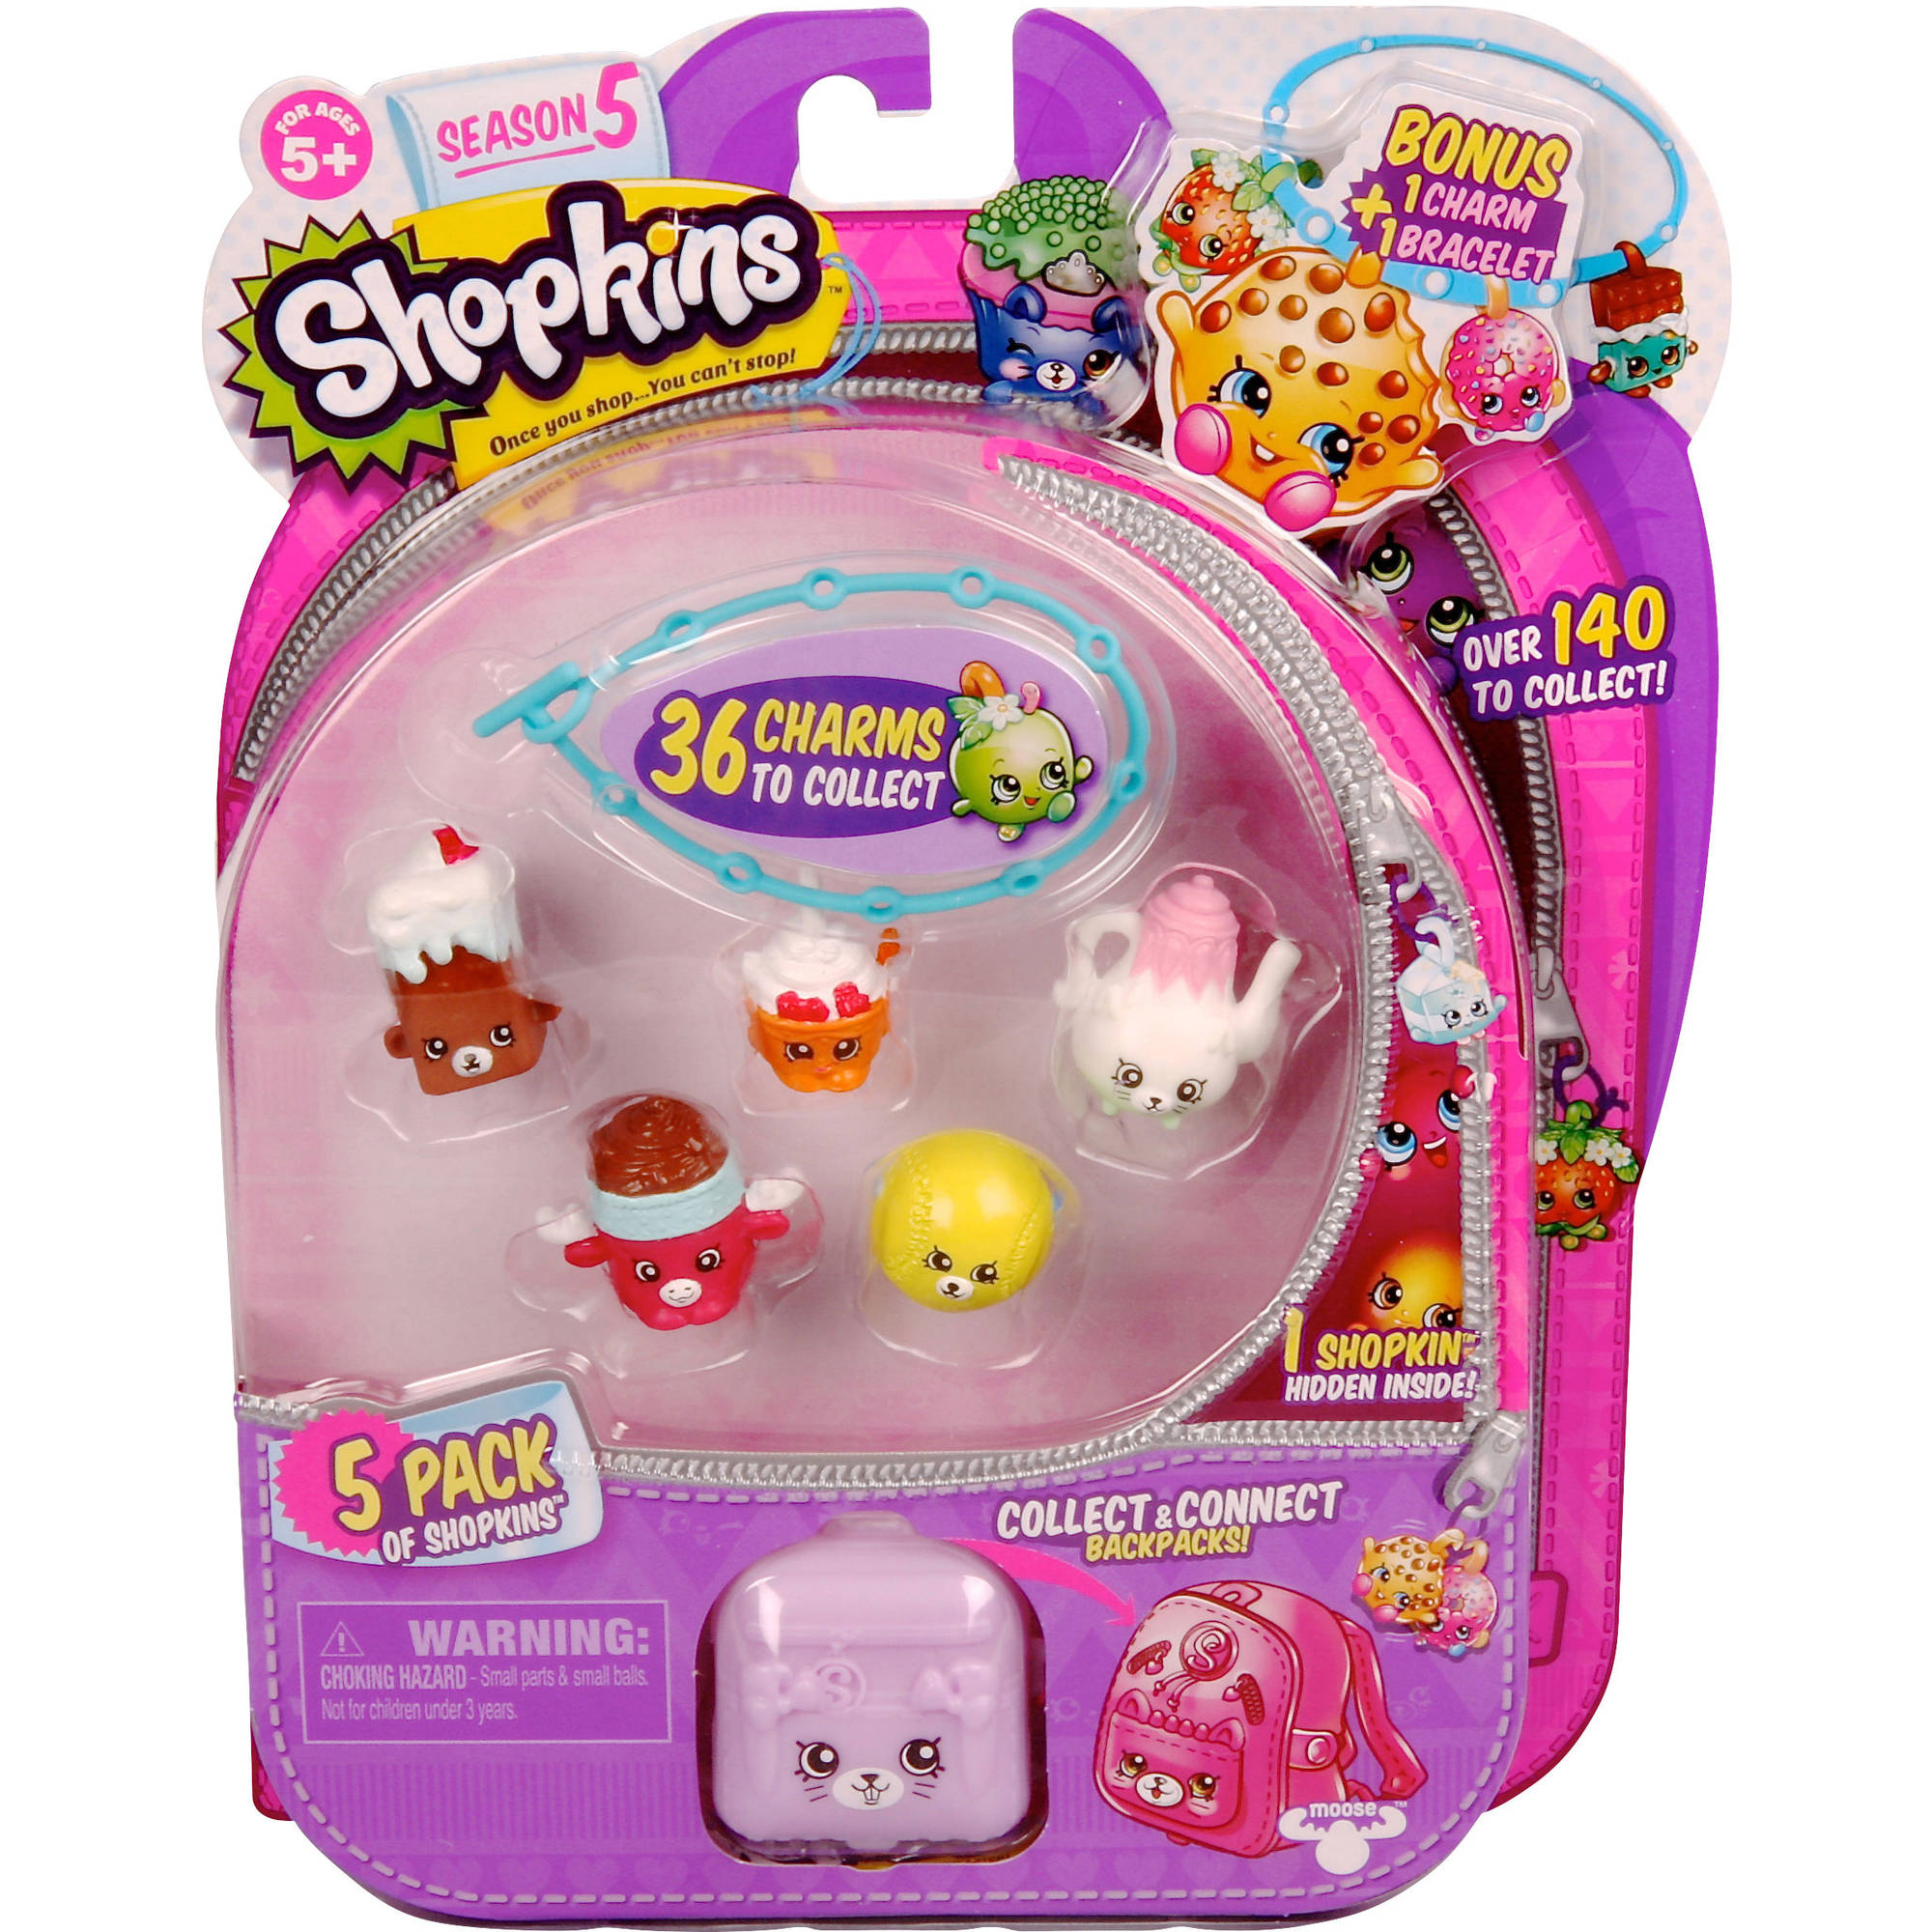 Shopkins 5pk, Season 5